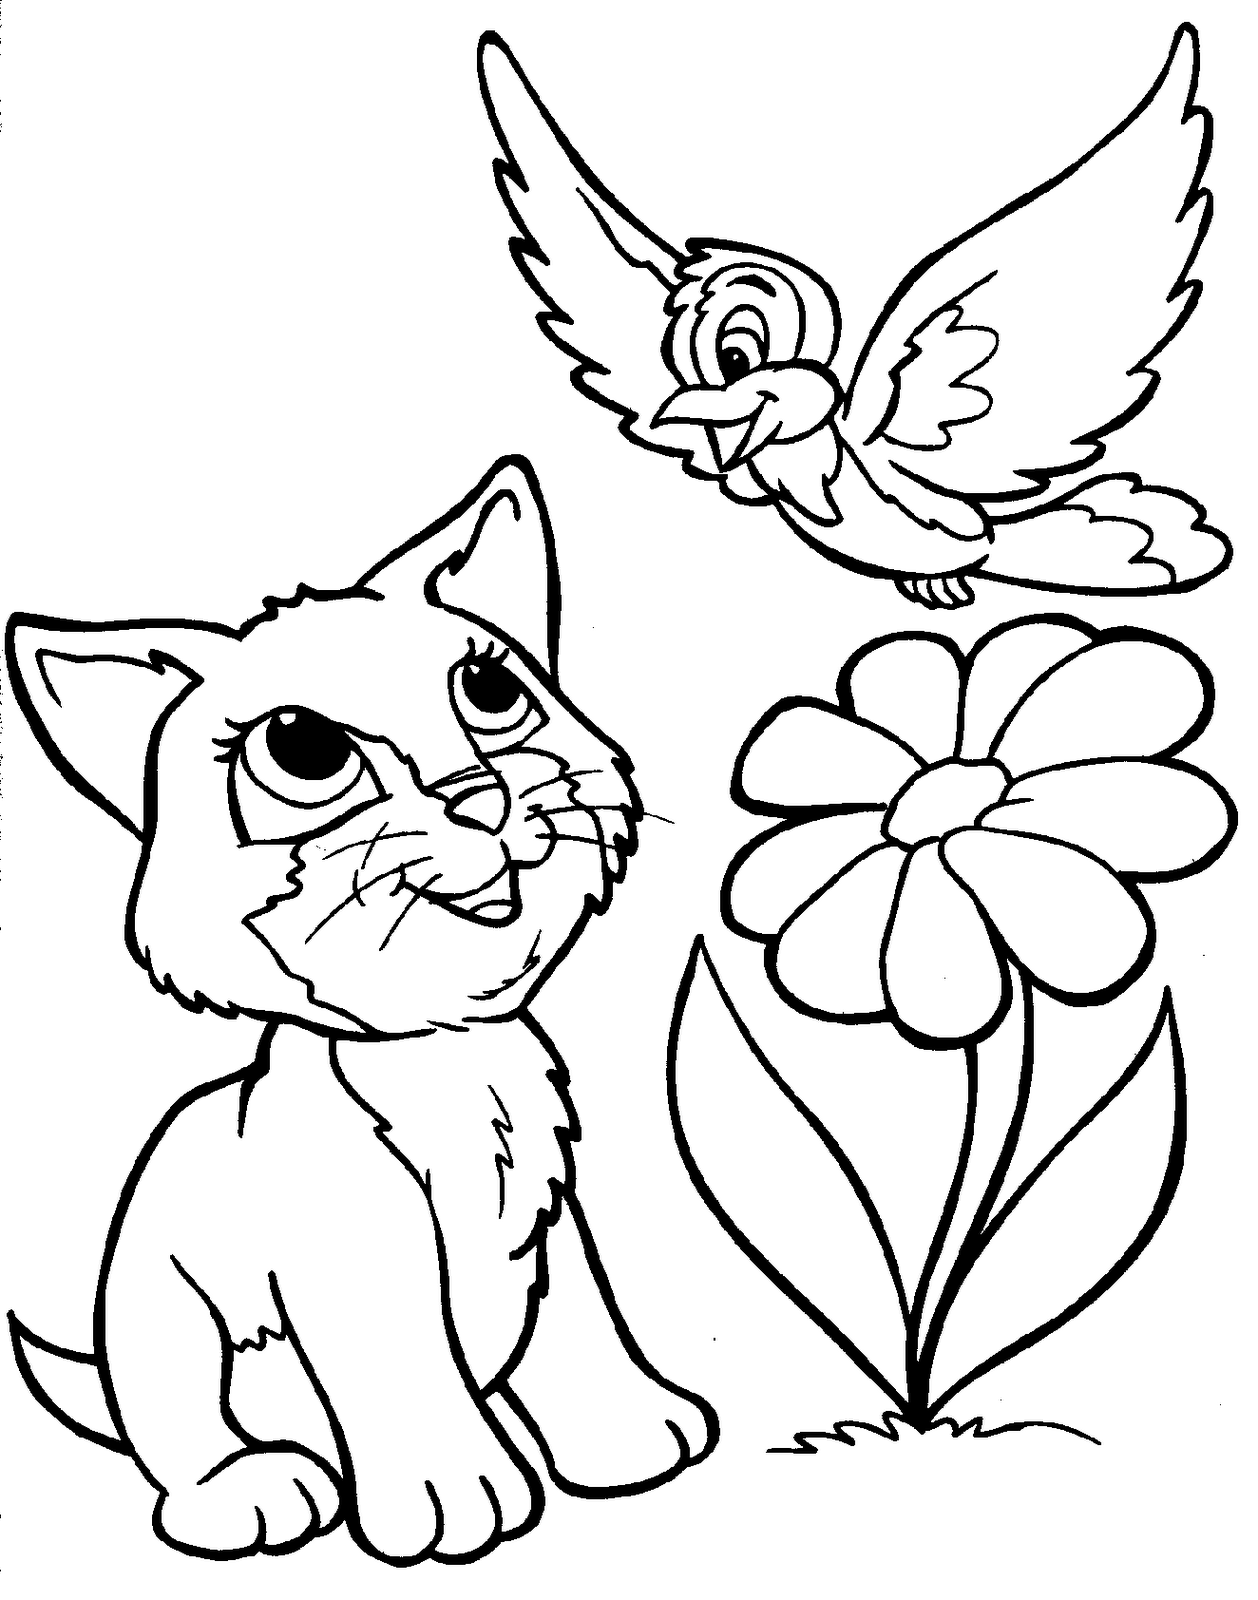 Disegni da colorare gattino uccellino fiore Coloring drawings for kids